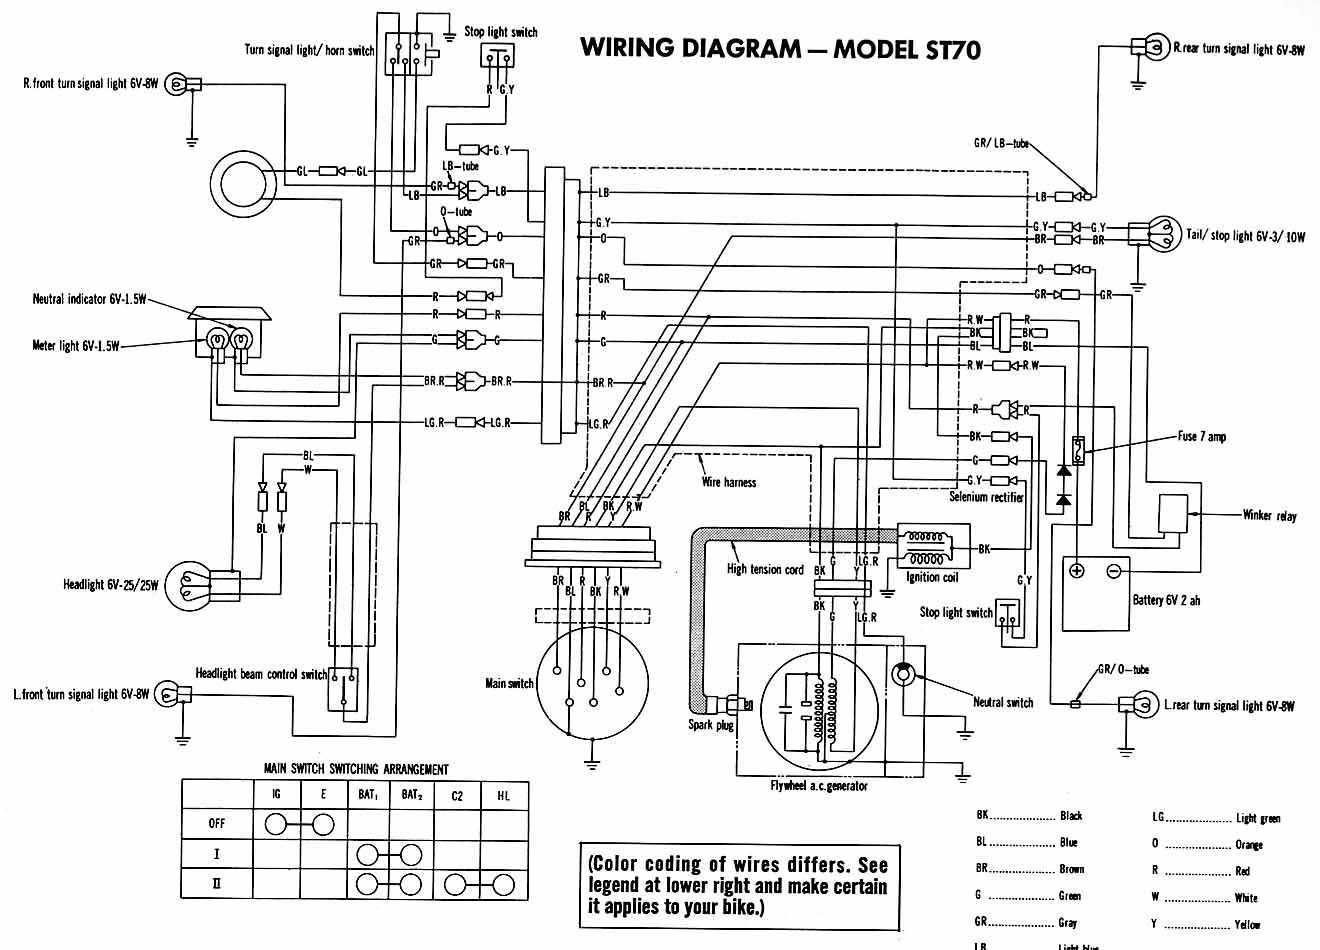 Distributor Wiring Diagram Honda : Honda st motorcycle wiring diagram all about